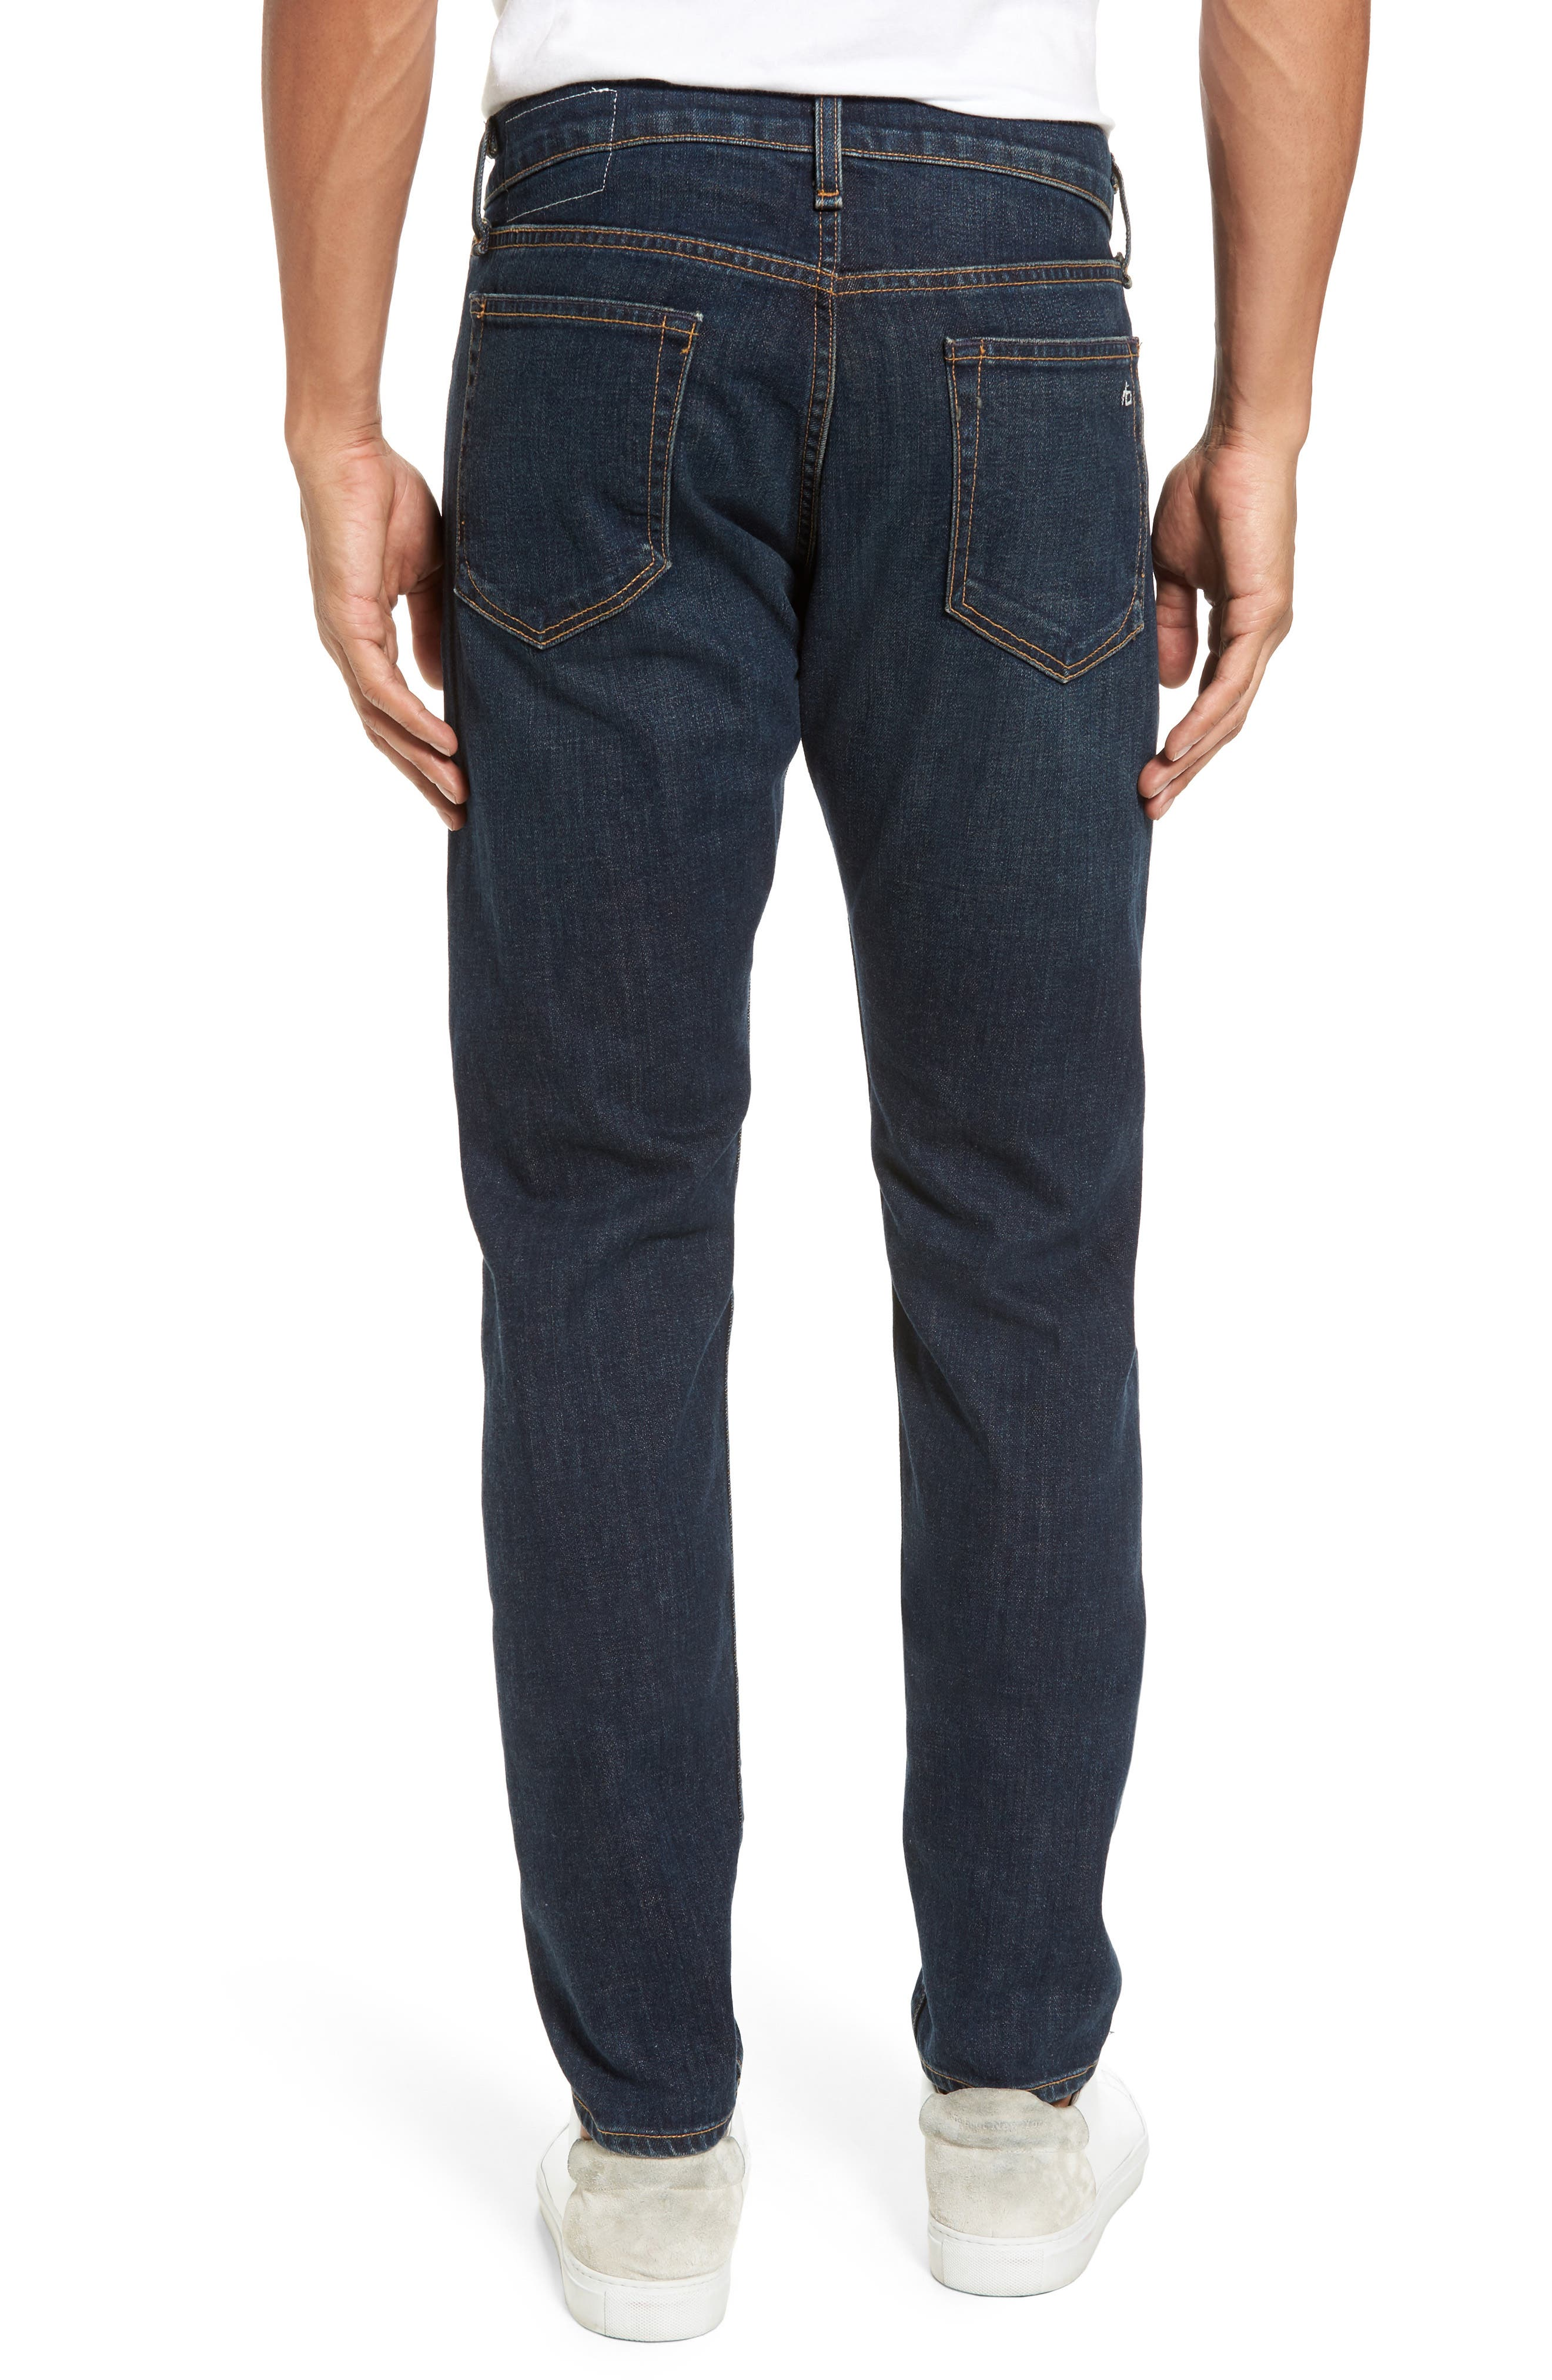 Fit 1 Skinny Fit Jeans,                             Alternate thumbnail 2, color,                             407